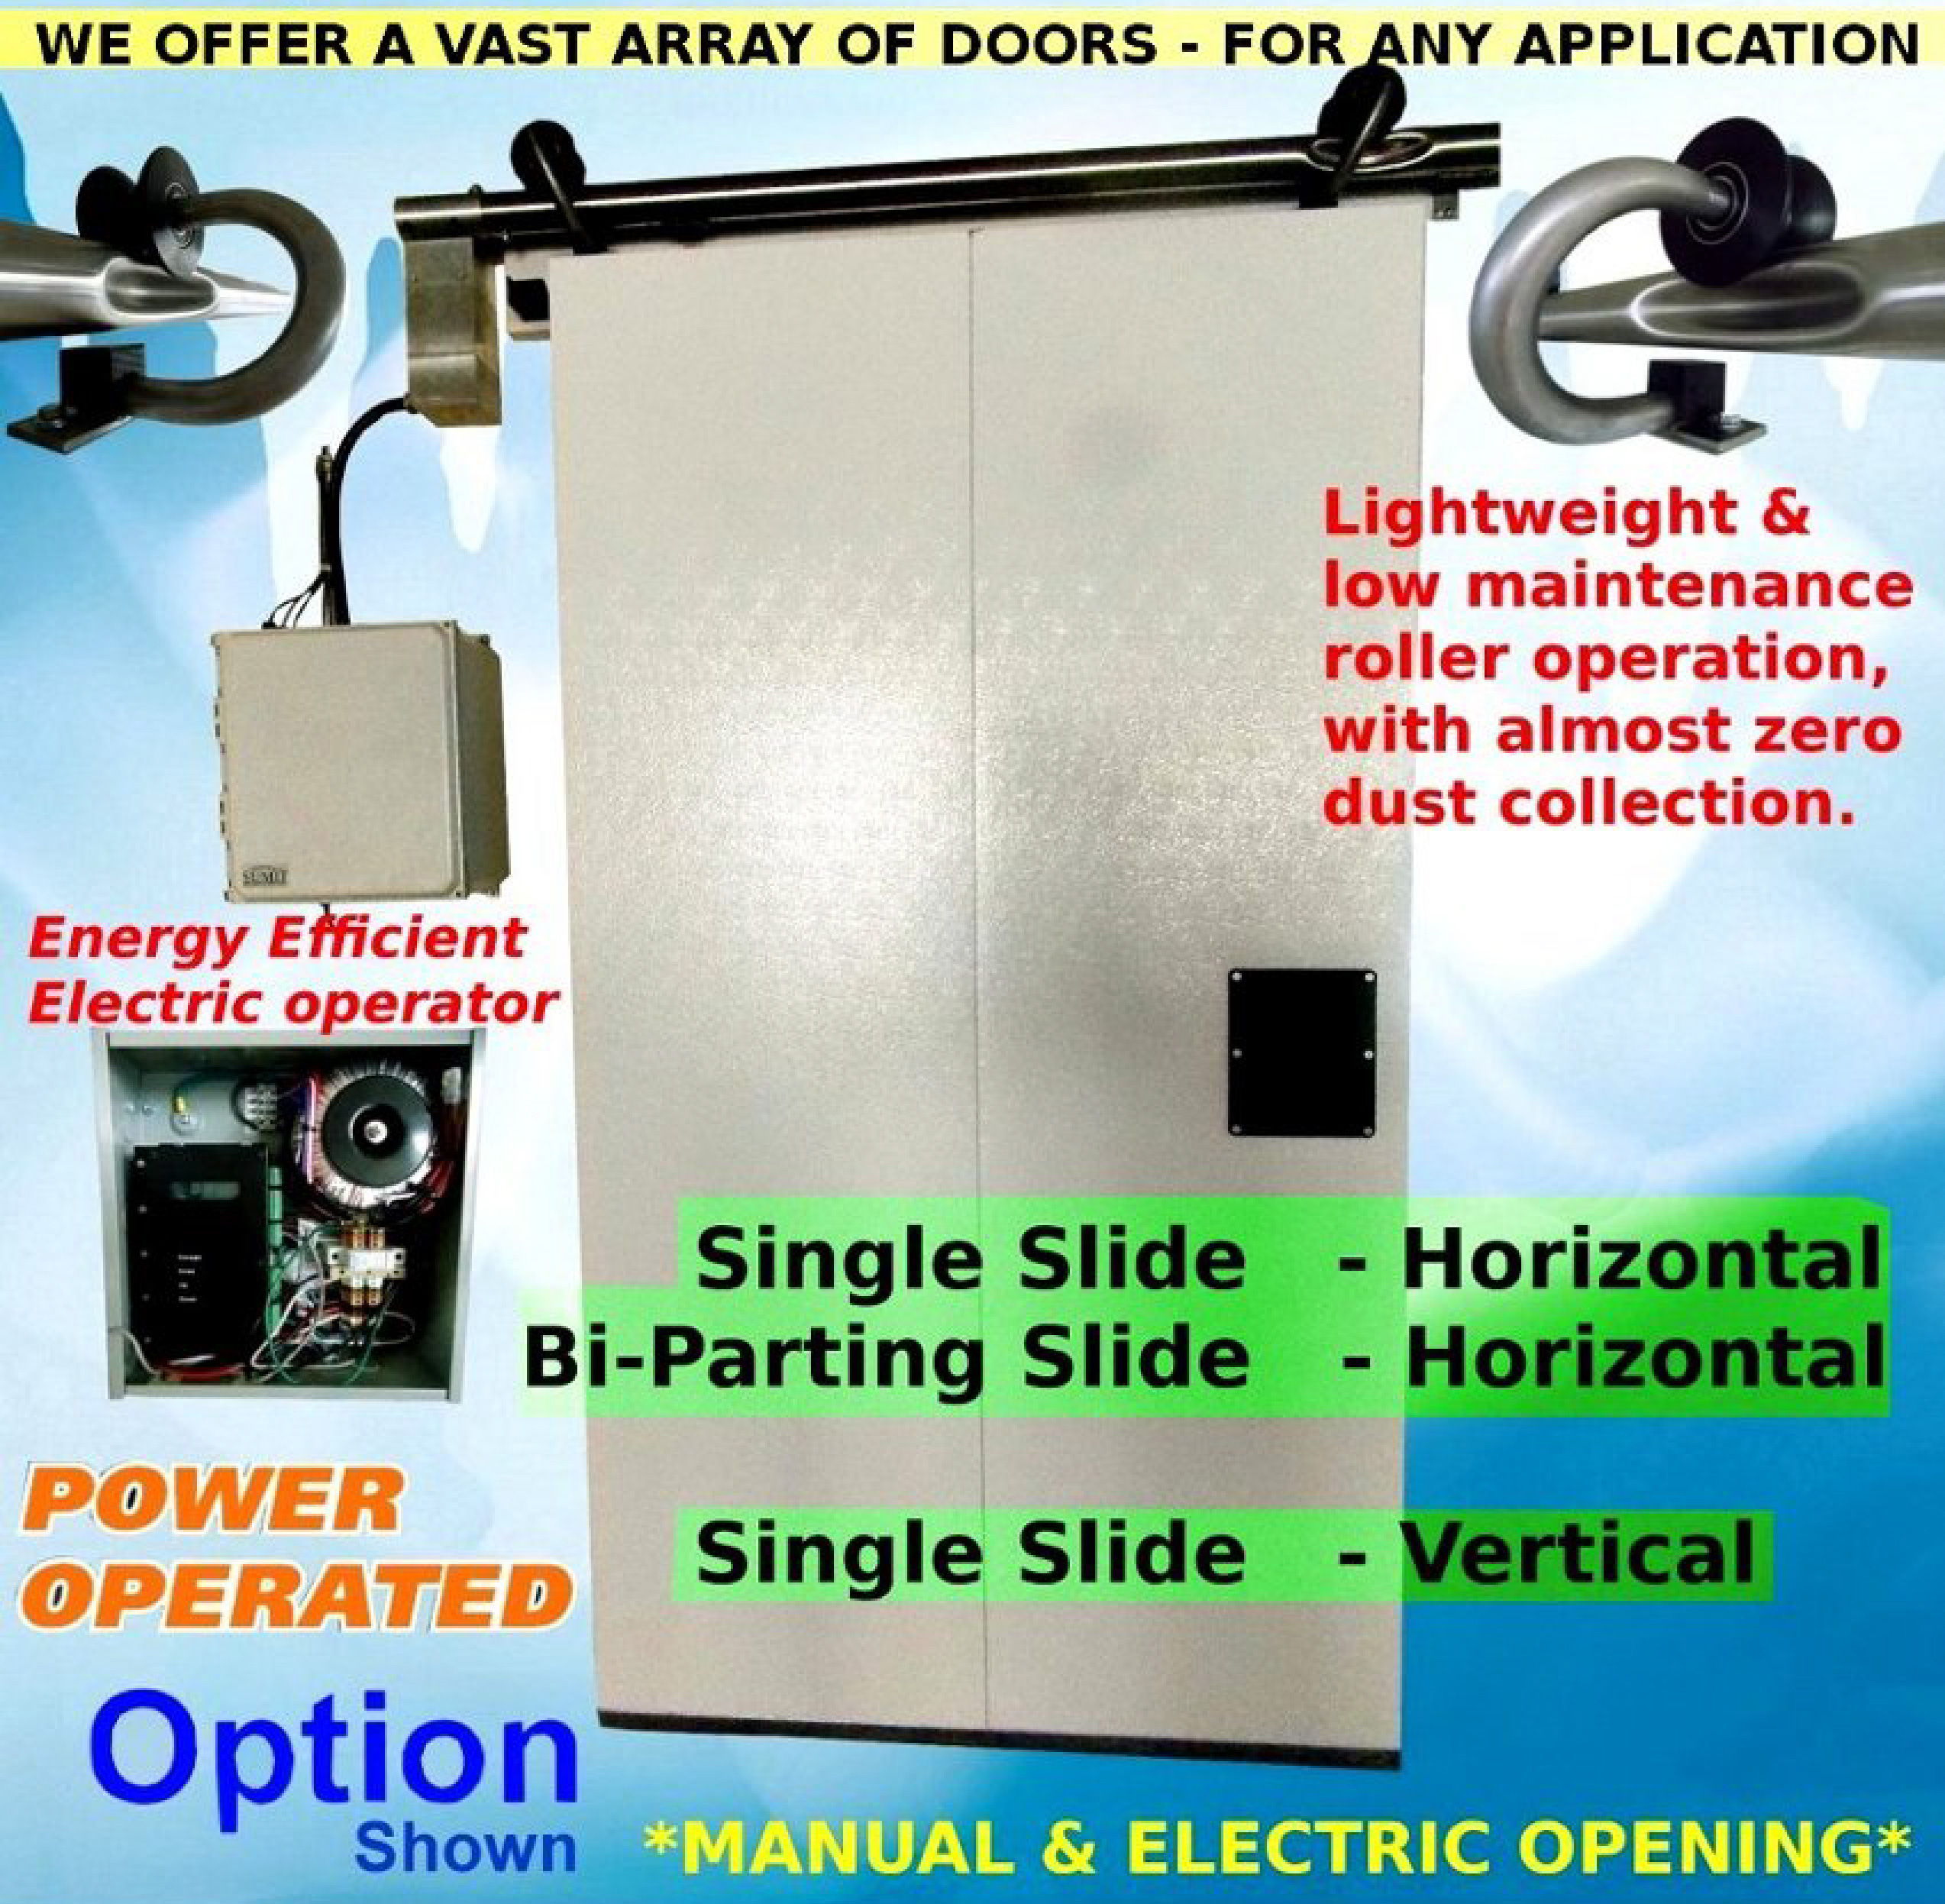 Energy Efficient Electric operator